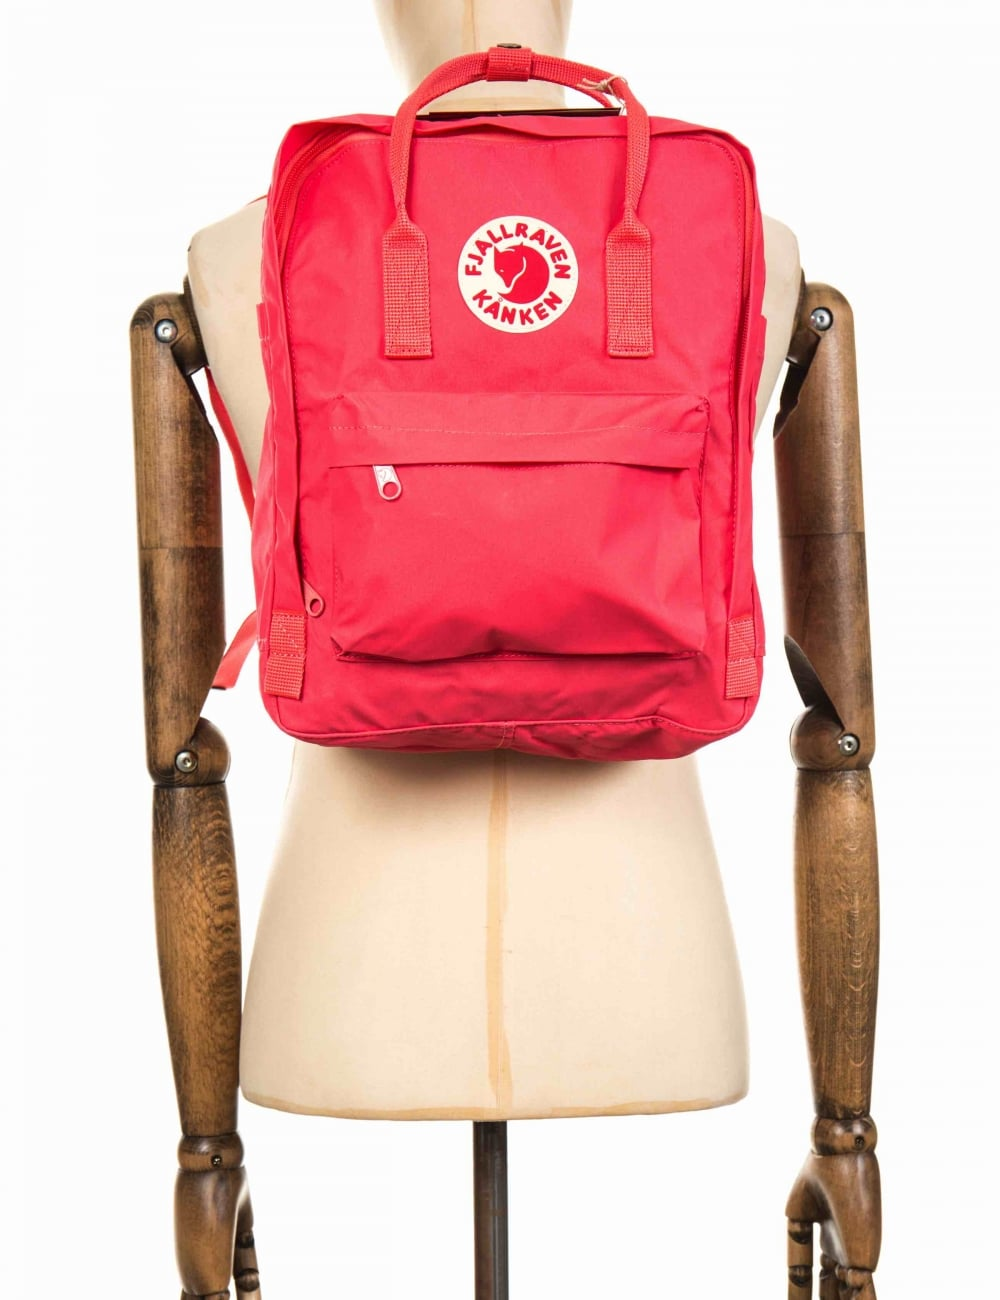 24a01fbb374 Fjallraven Kanken Classic Backpack - Peach Pink - Accessories from ...